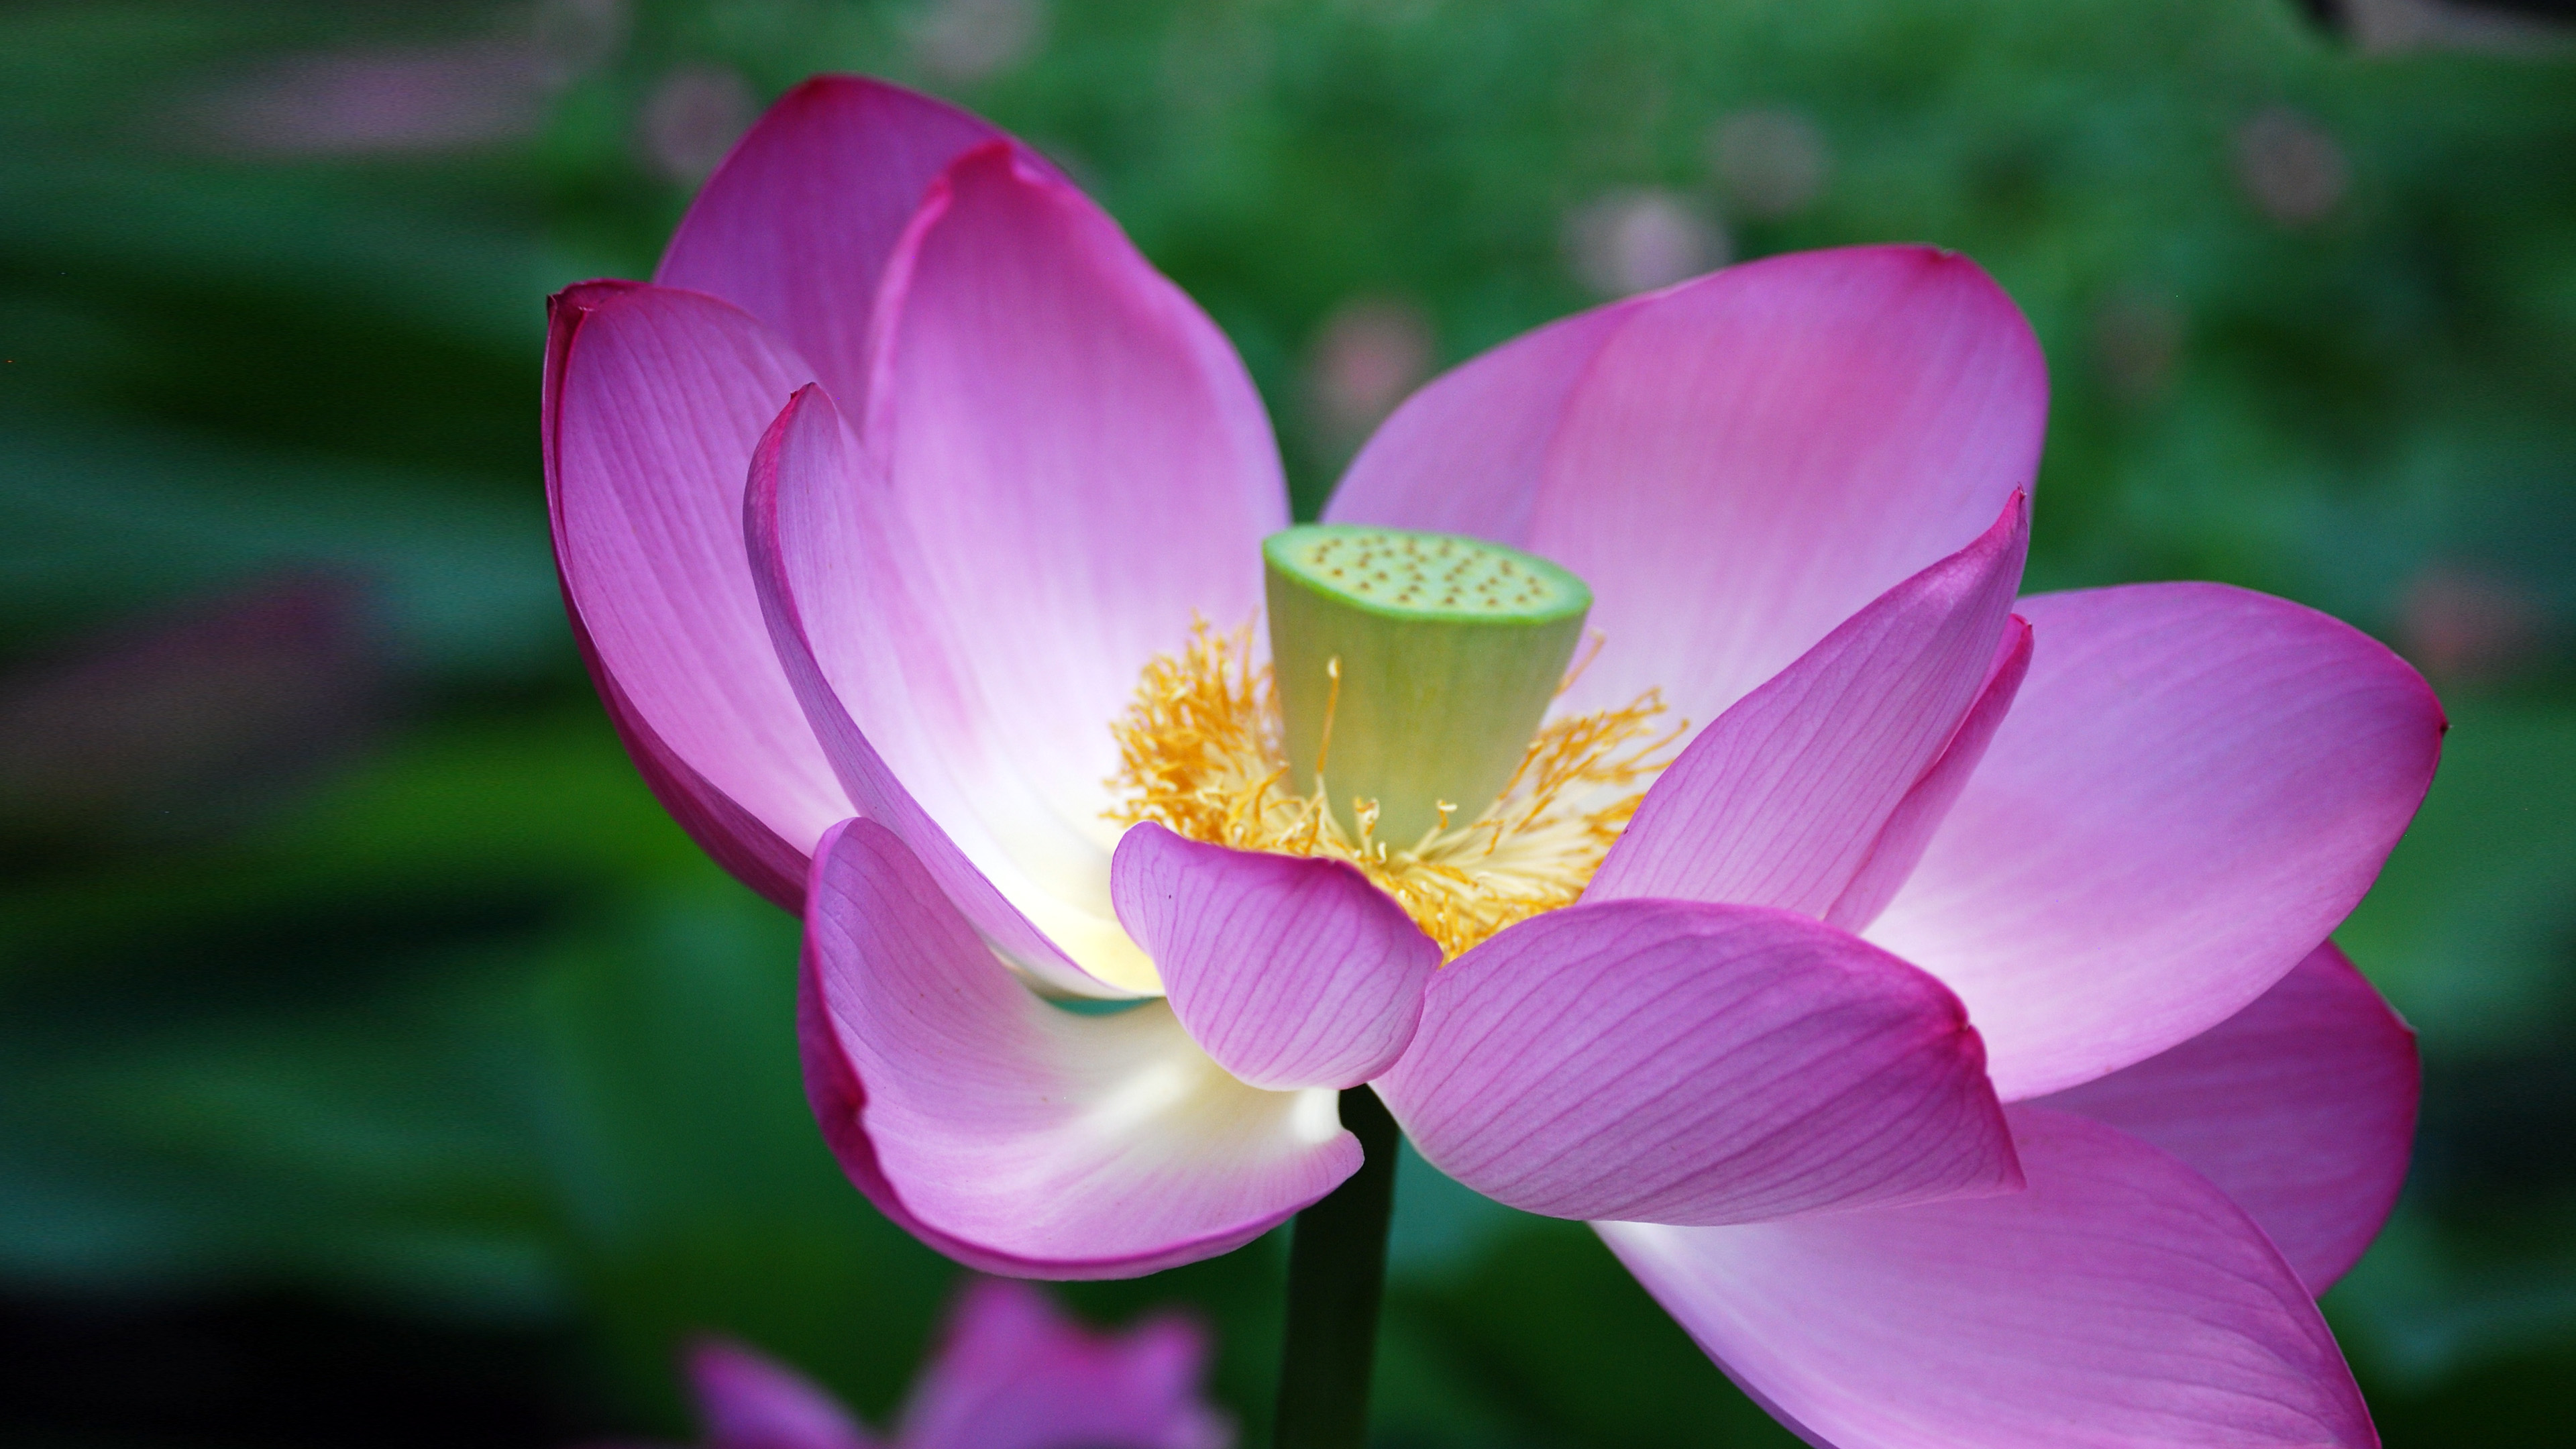 Ultra Hd Lotus Flower Pictures With Close Up Seed Head Hd